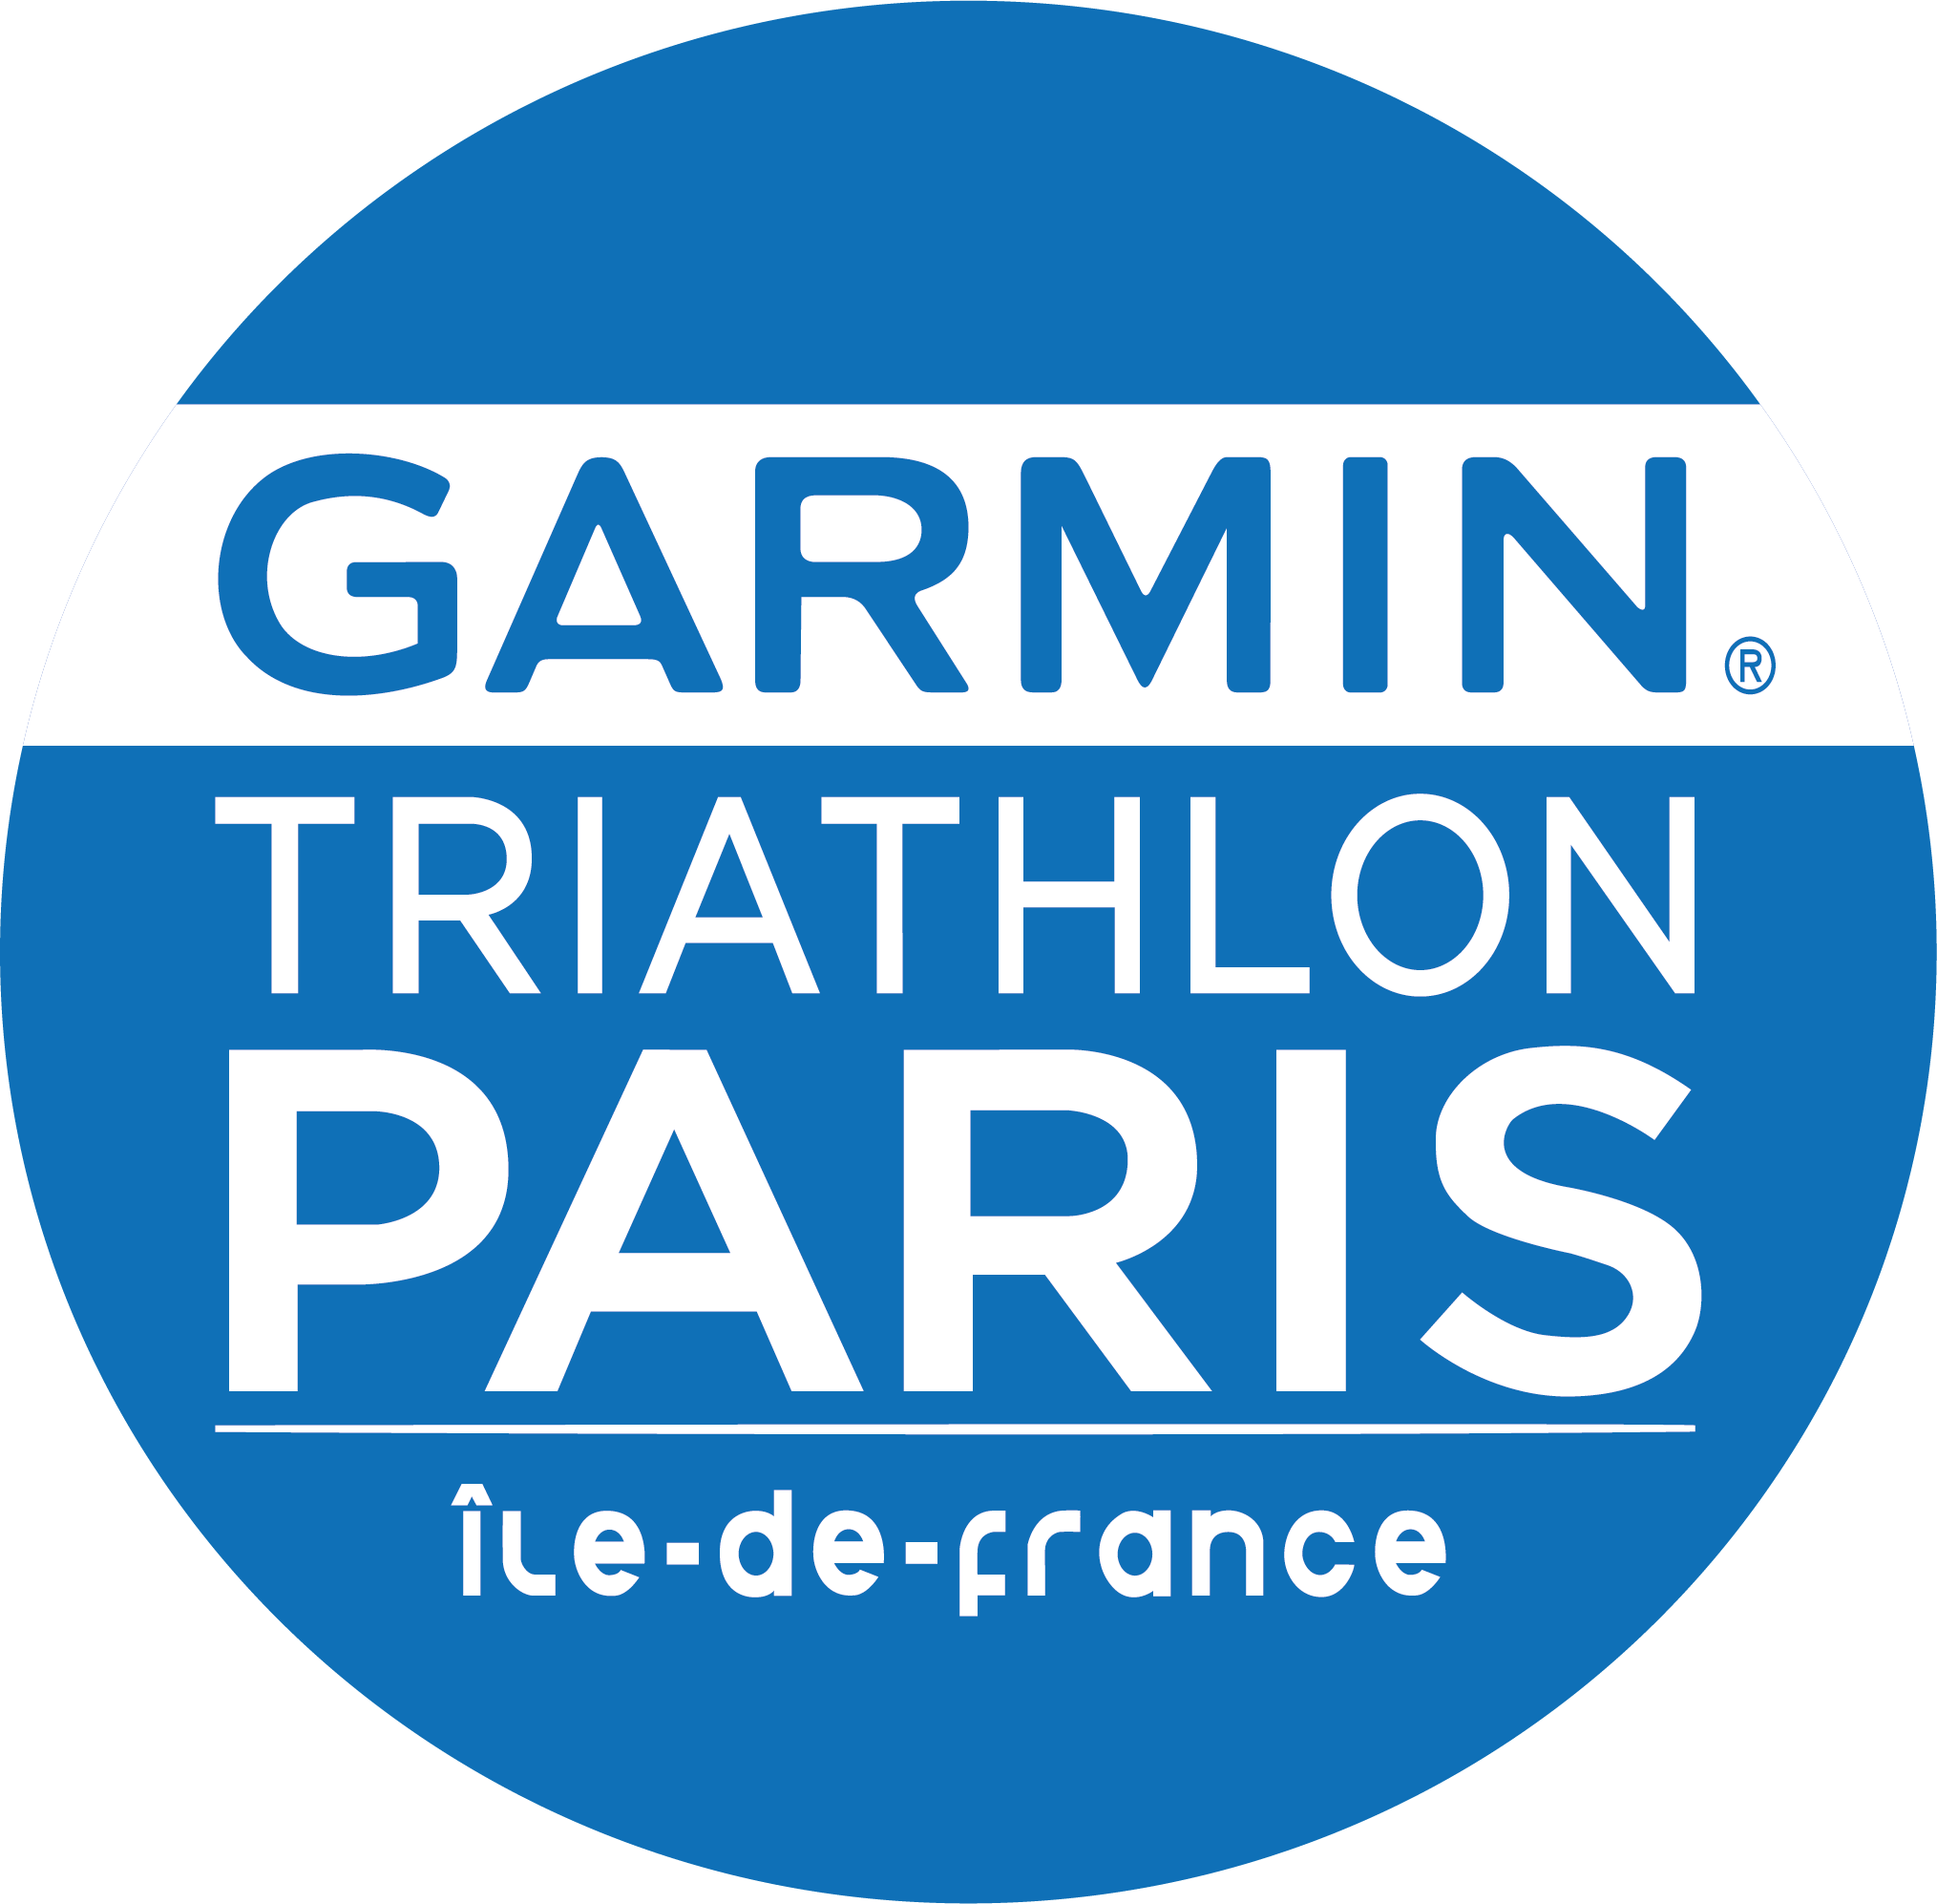 https://www.garmintriathlondeparis.fr/fr